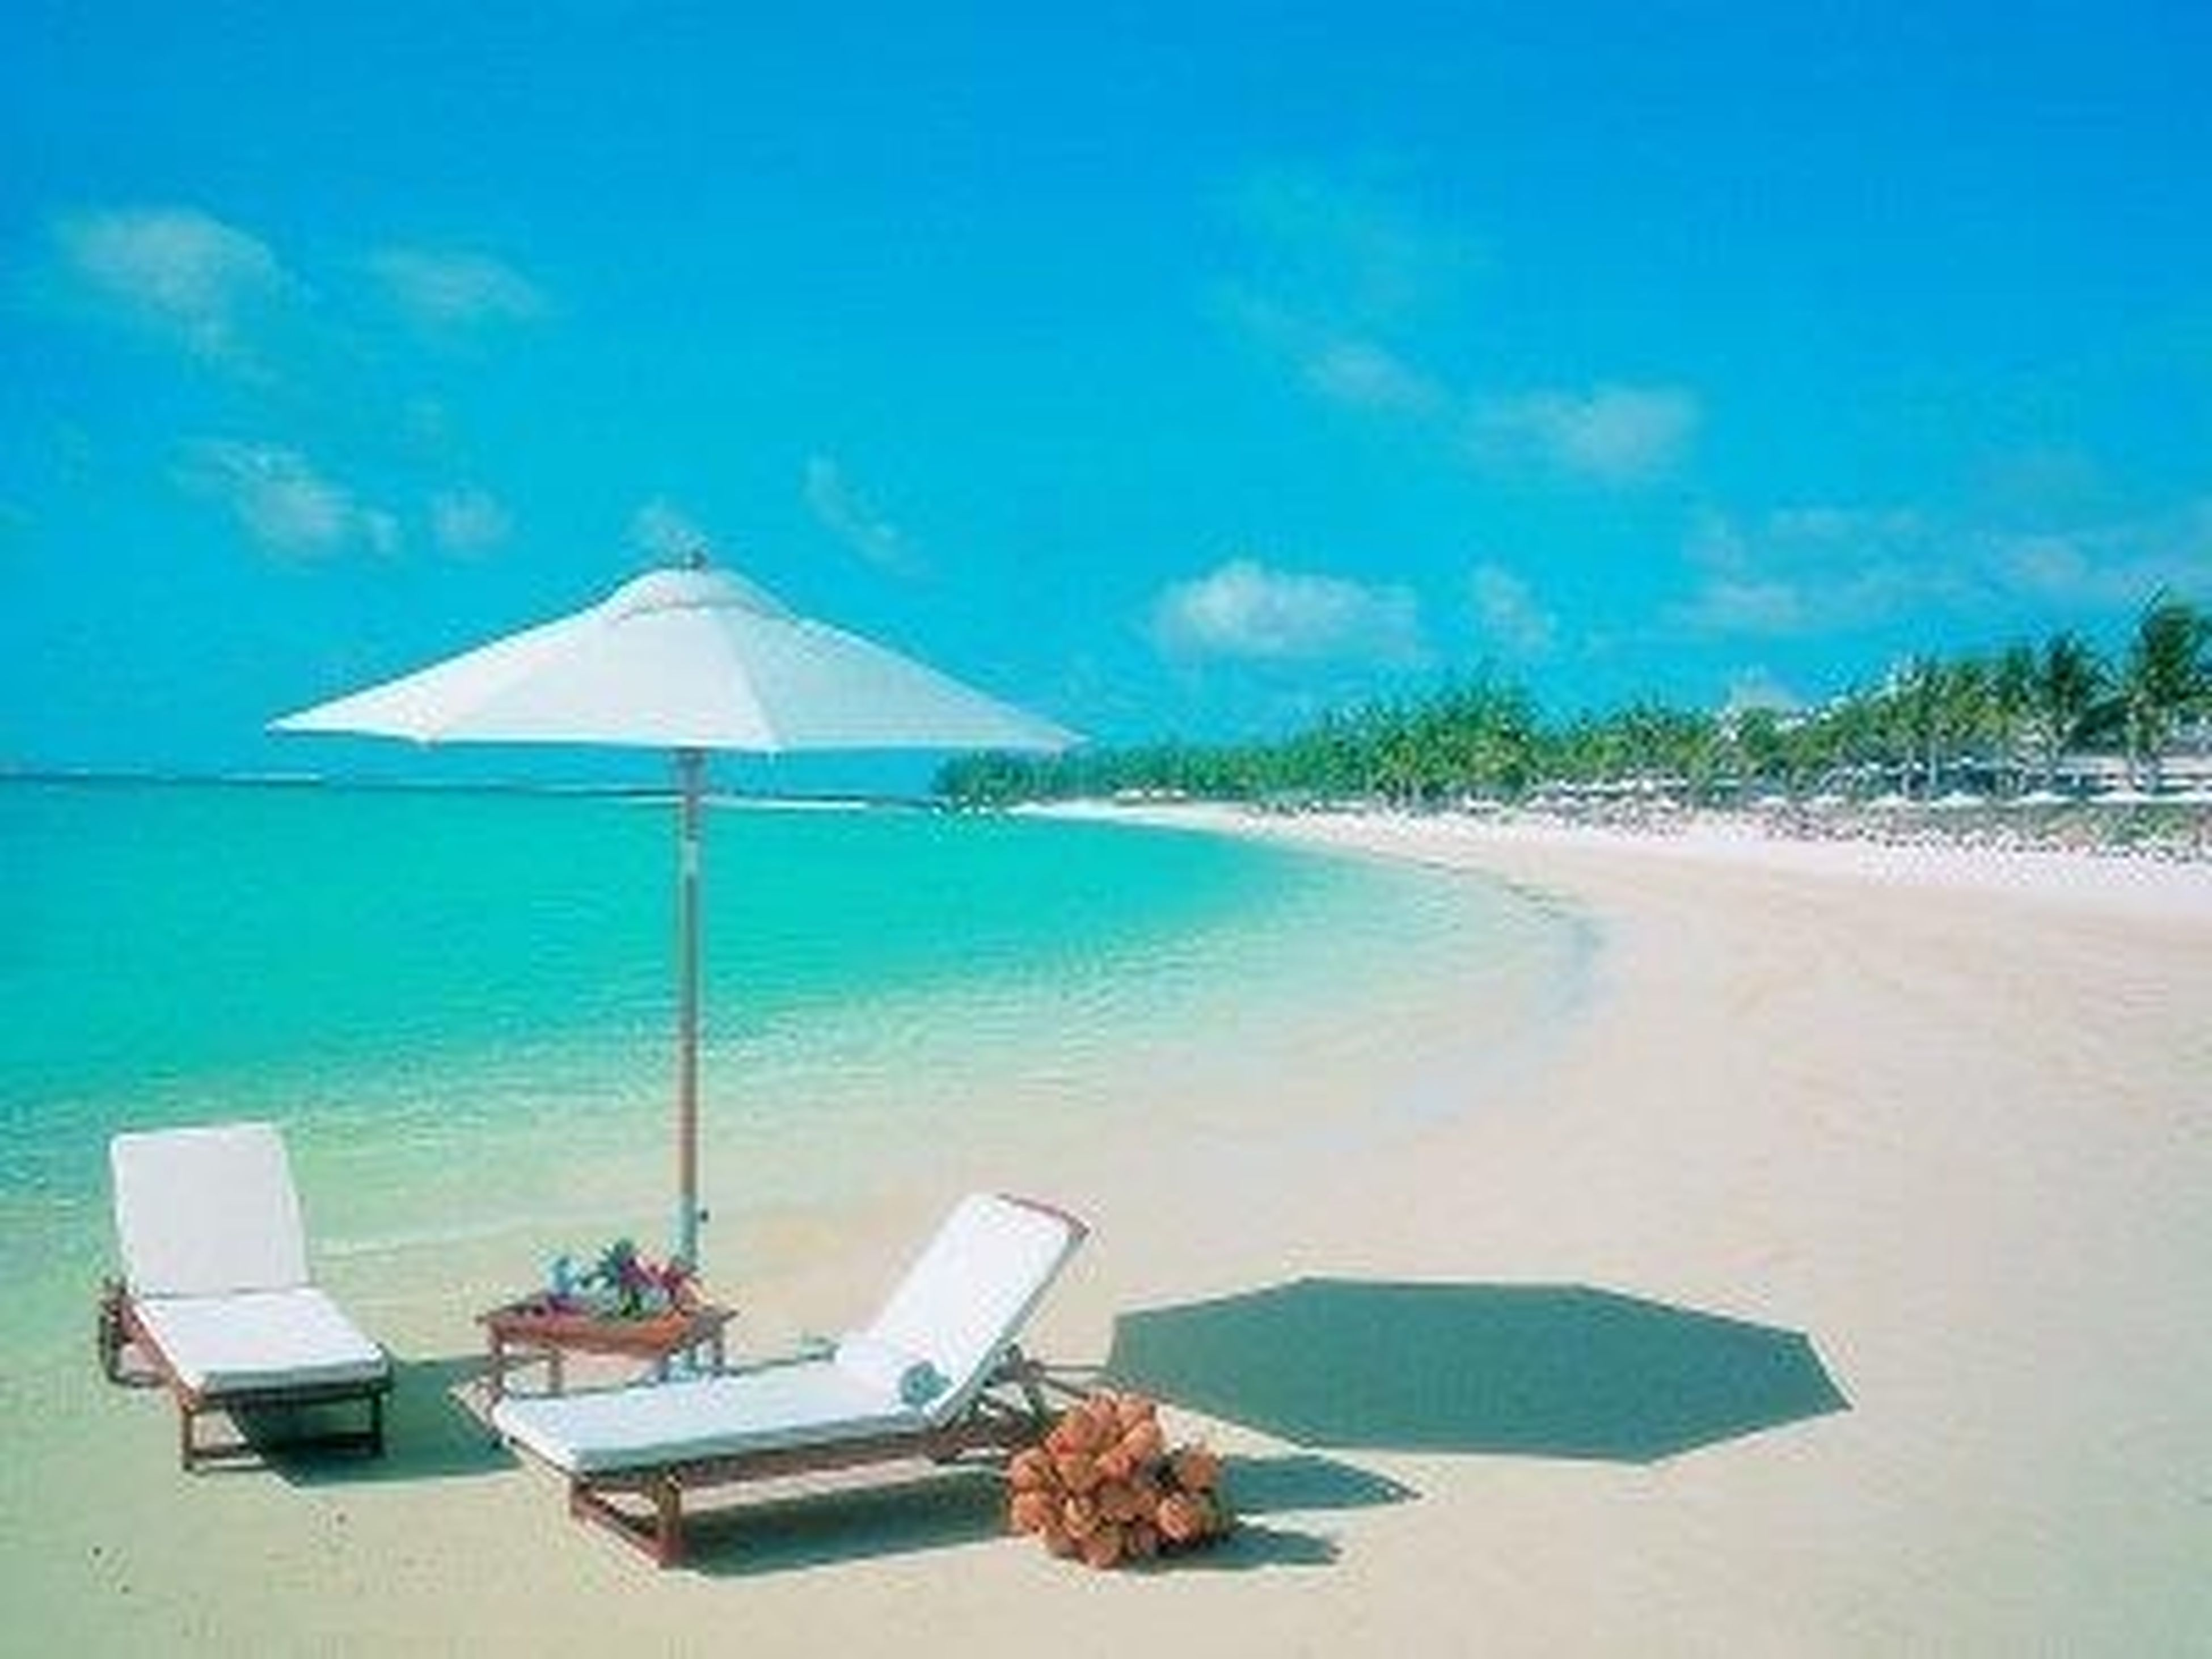 beach, sand, sea, blue, water, sky, shore, tranquility, tranquil scene, nature, day, sunlight, horizon over water, shadow, transportation, scenics, outdoors, absence, vacations, tree